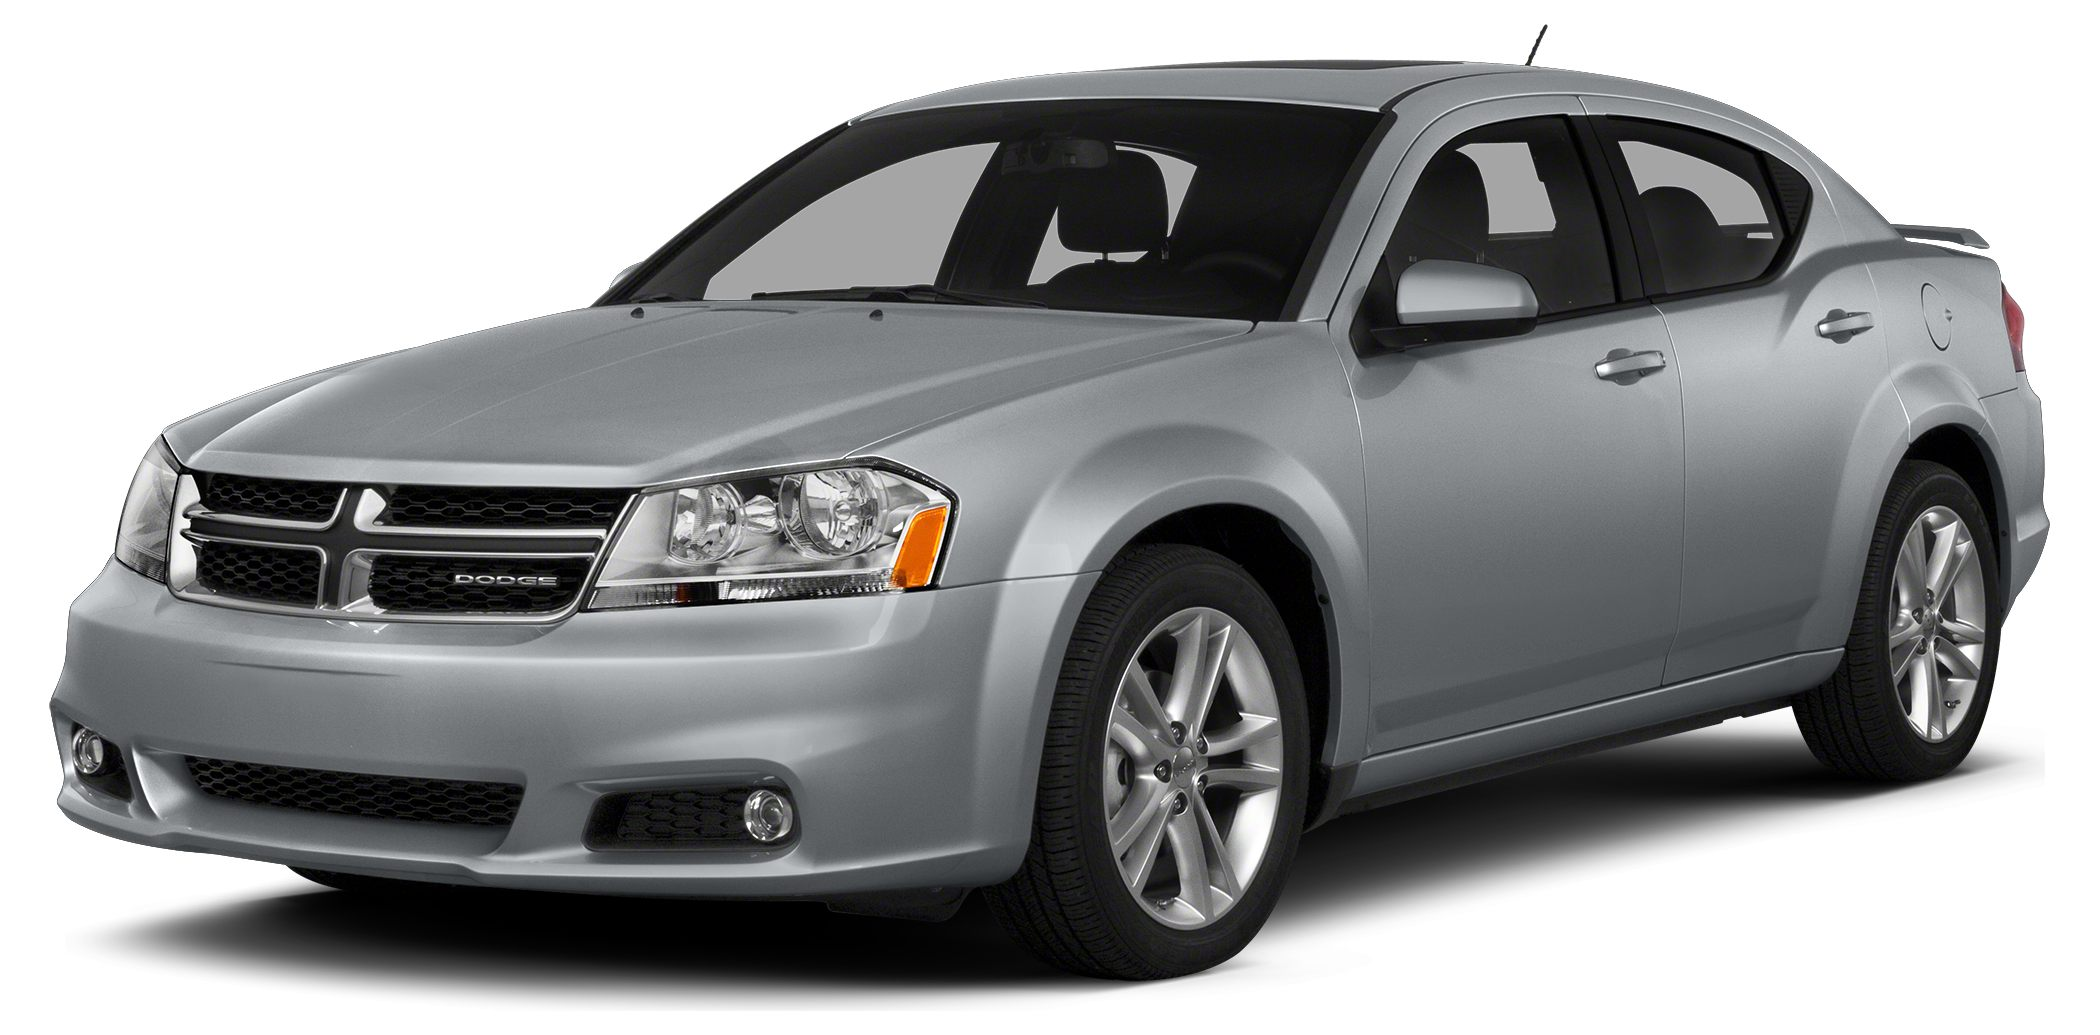 2014 Dodge Avenger SE JUST REPRICED FROM 13977 EPA 30 MPG Hwy21 MPG City CARFAX 1-Owner ONLY